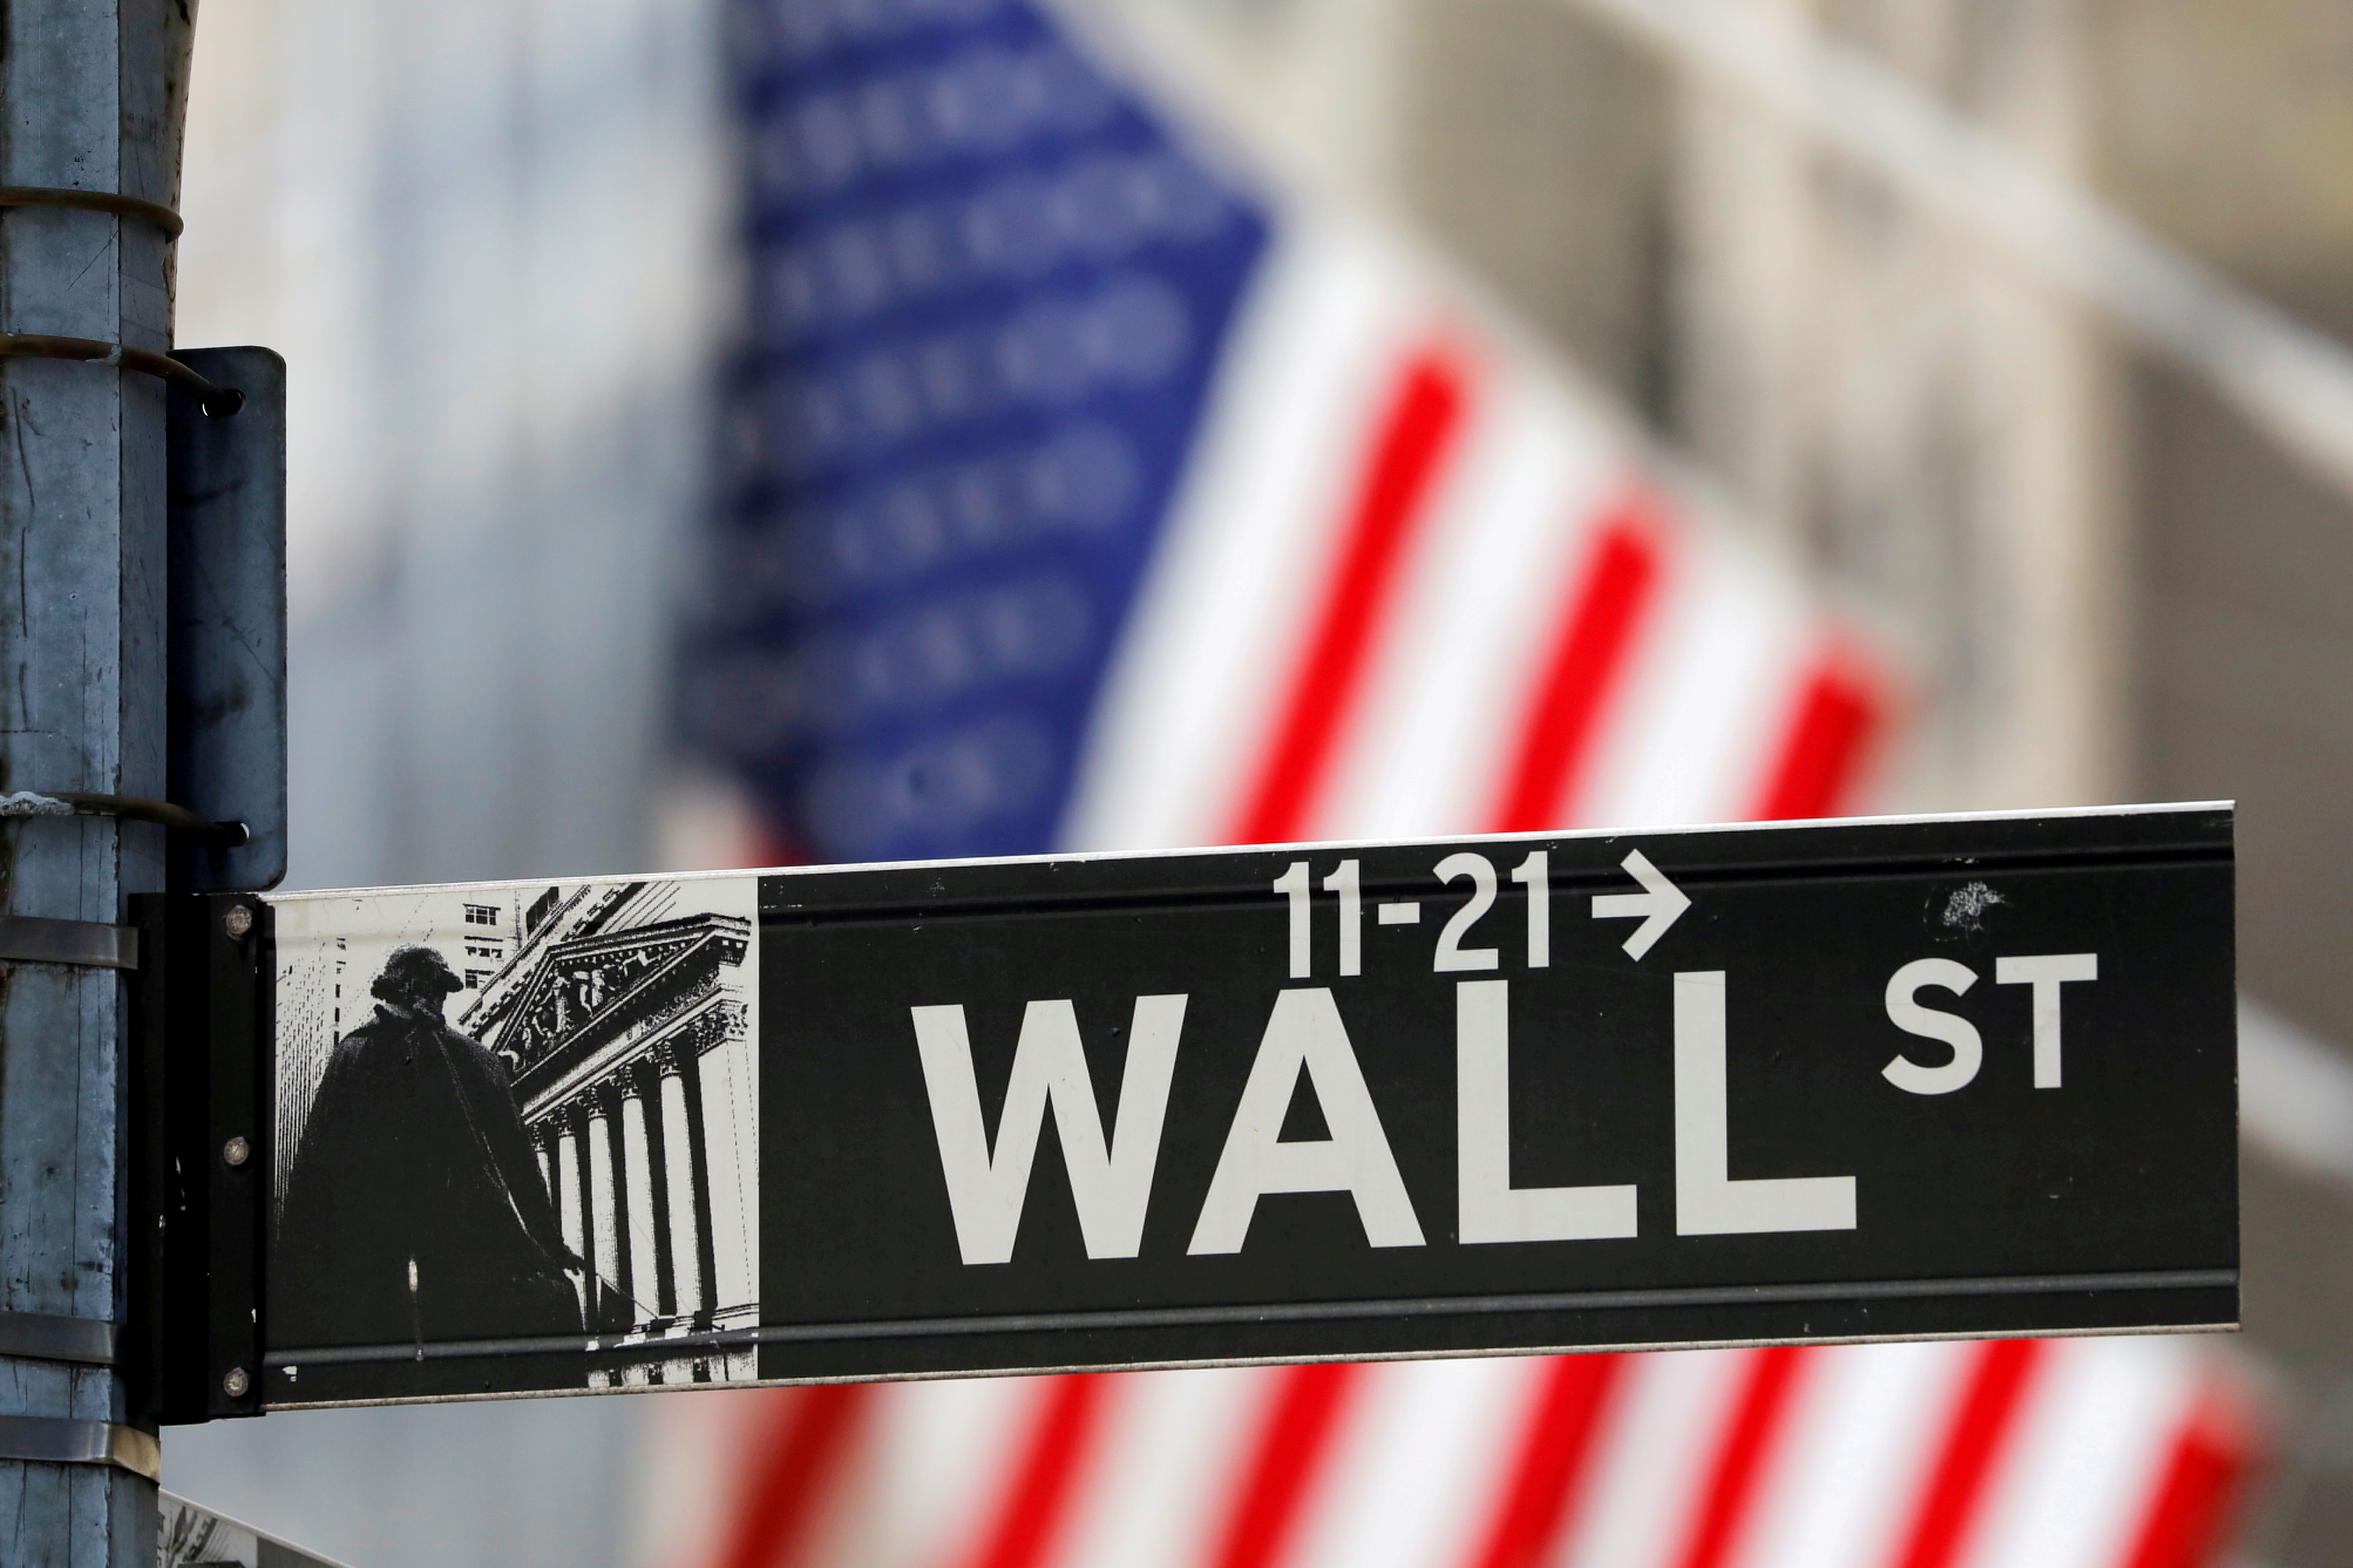 A street sign for Wall Street is seen outside the New York Stock Exchange (NYSE) in New York City, New York, U.S., July 19, 2021. REUTERS/Andrew Kelly